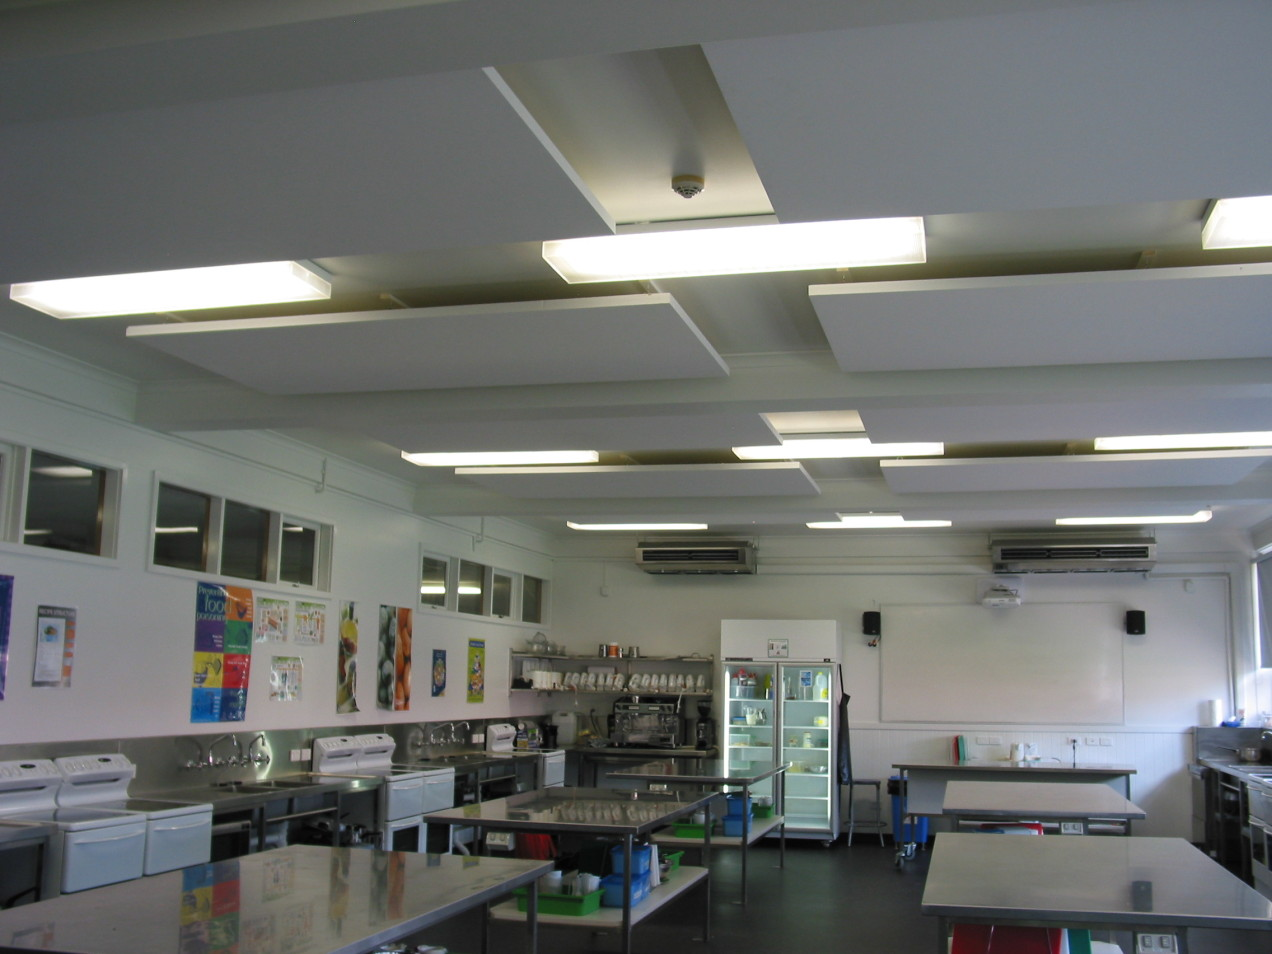 Sonofonic Lightweight Acoustic Panels installed in a Teaching Kitchen to minimise background noise